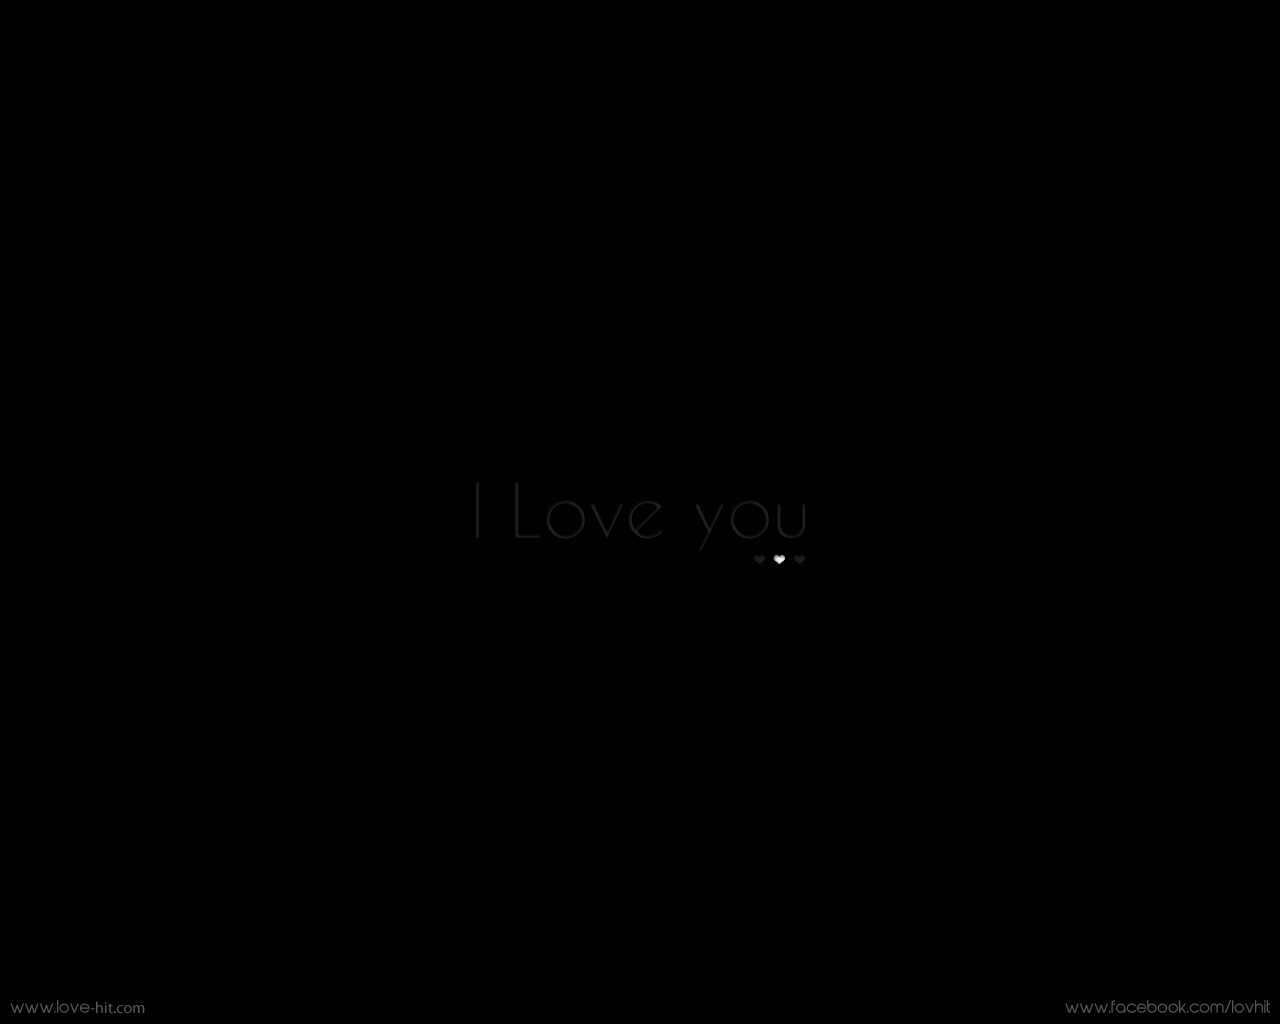 I Love you- black background